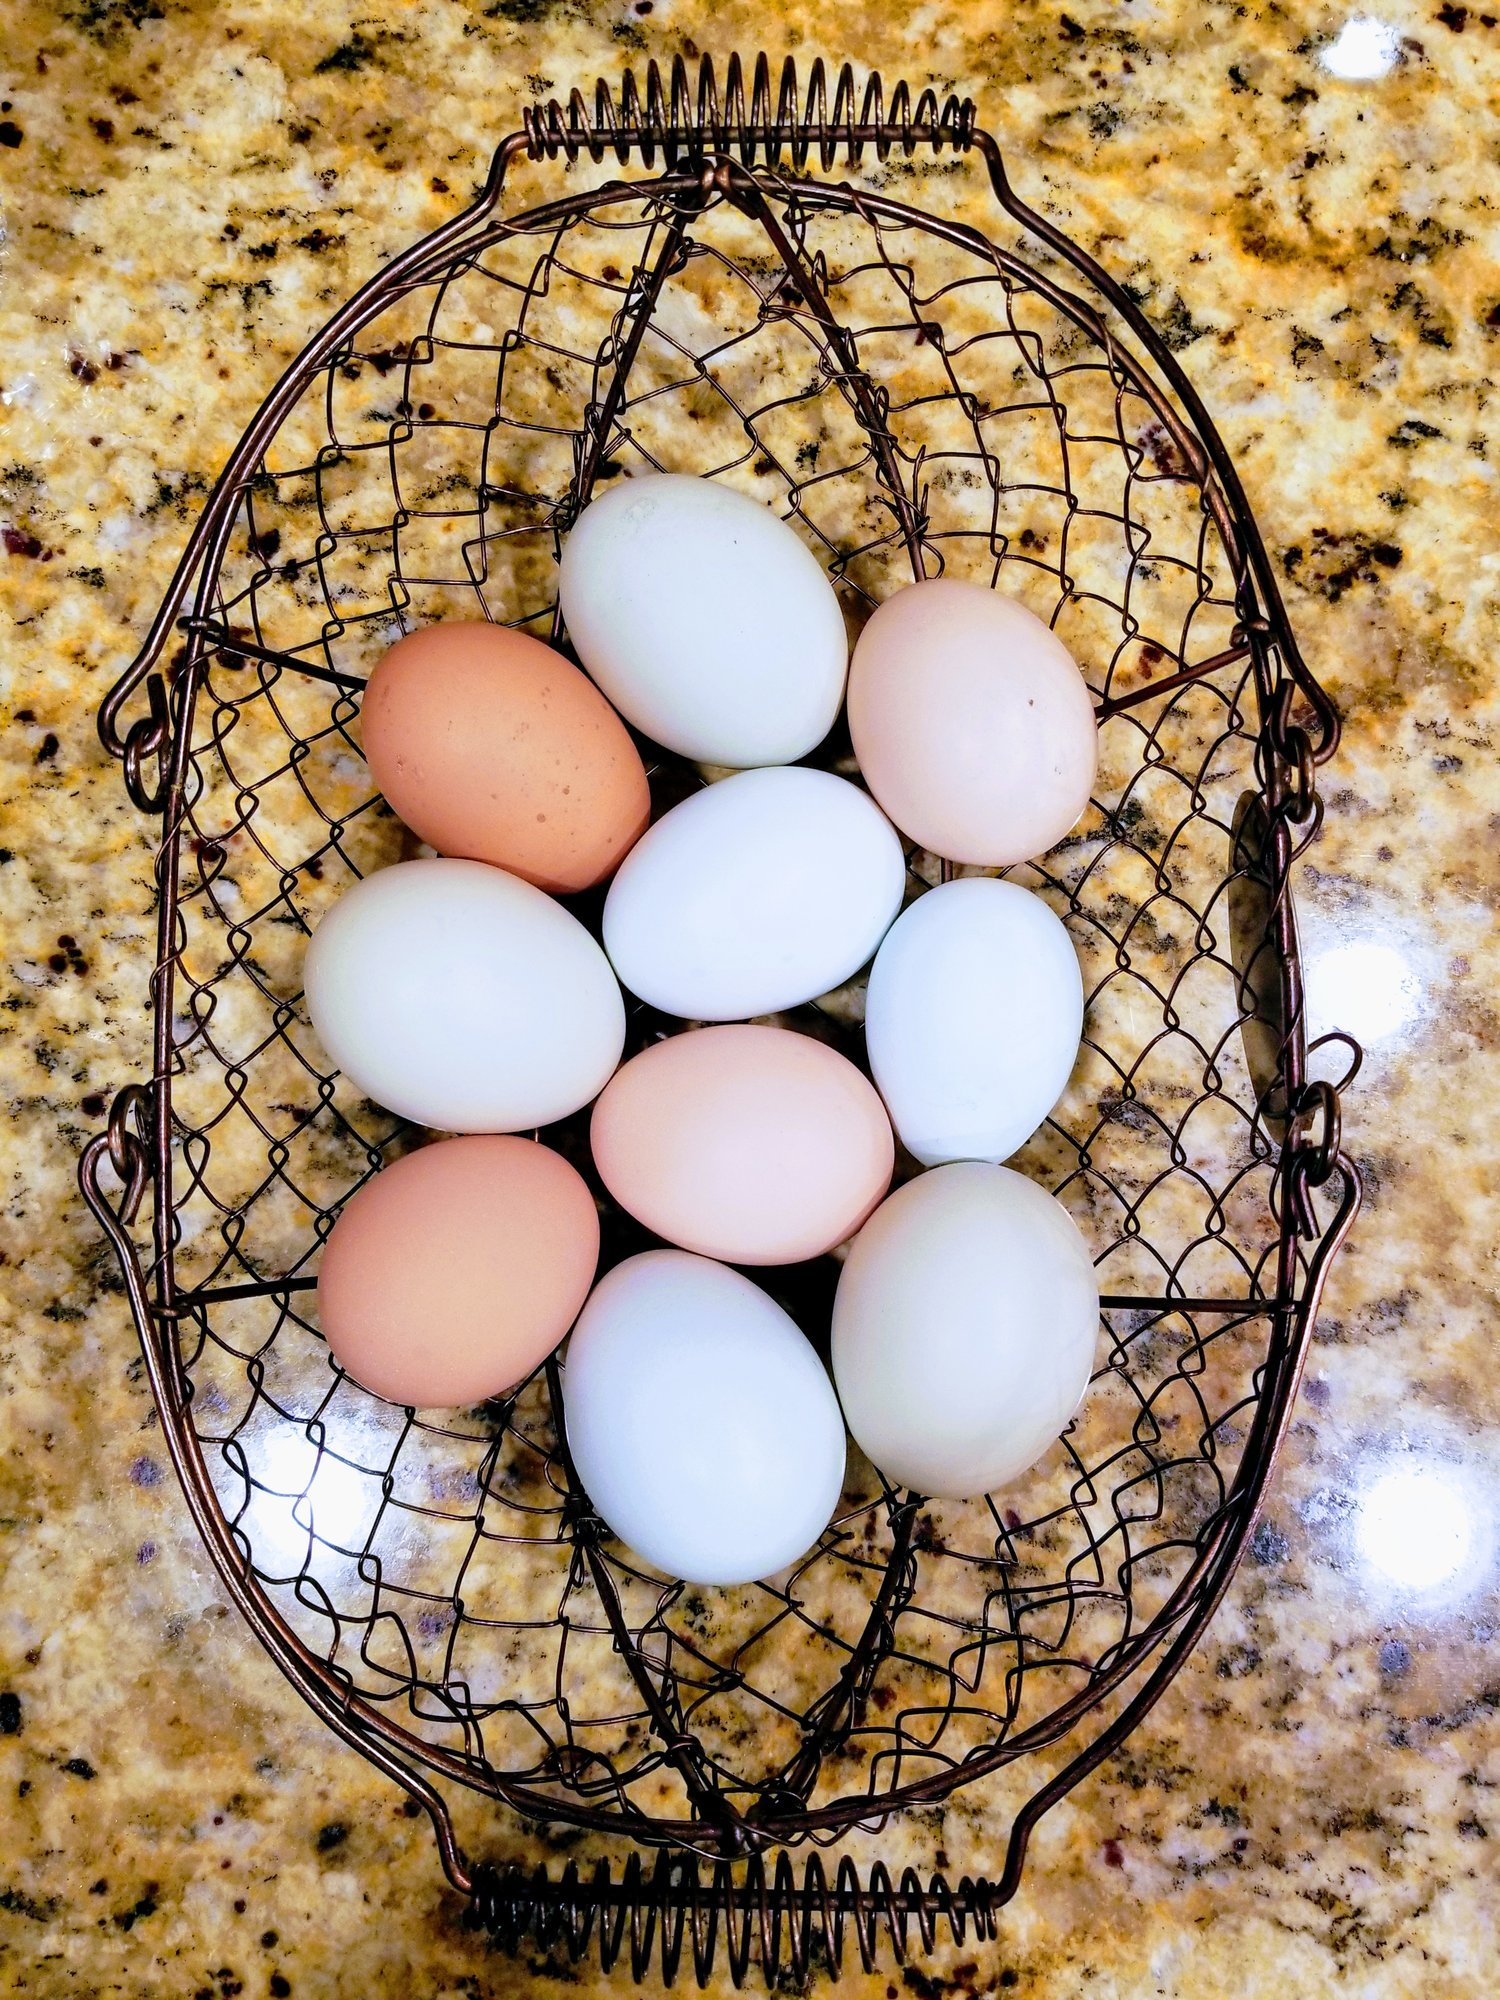 Egg basket 1.jpg